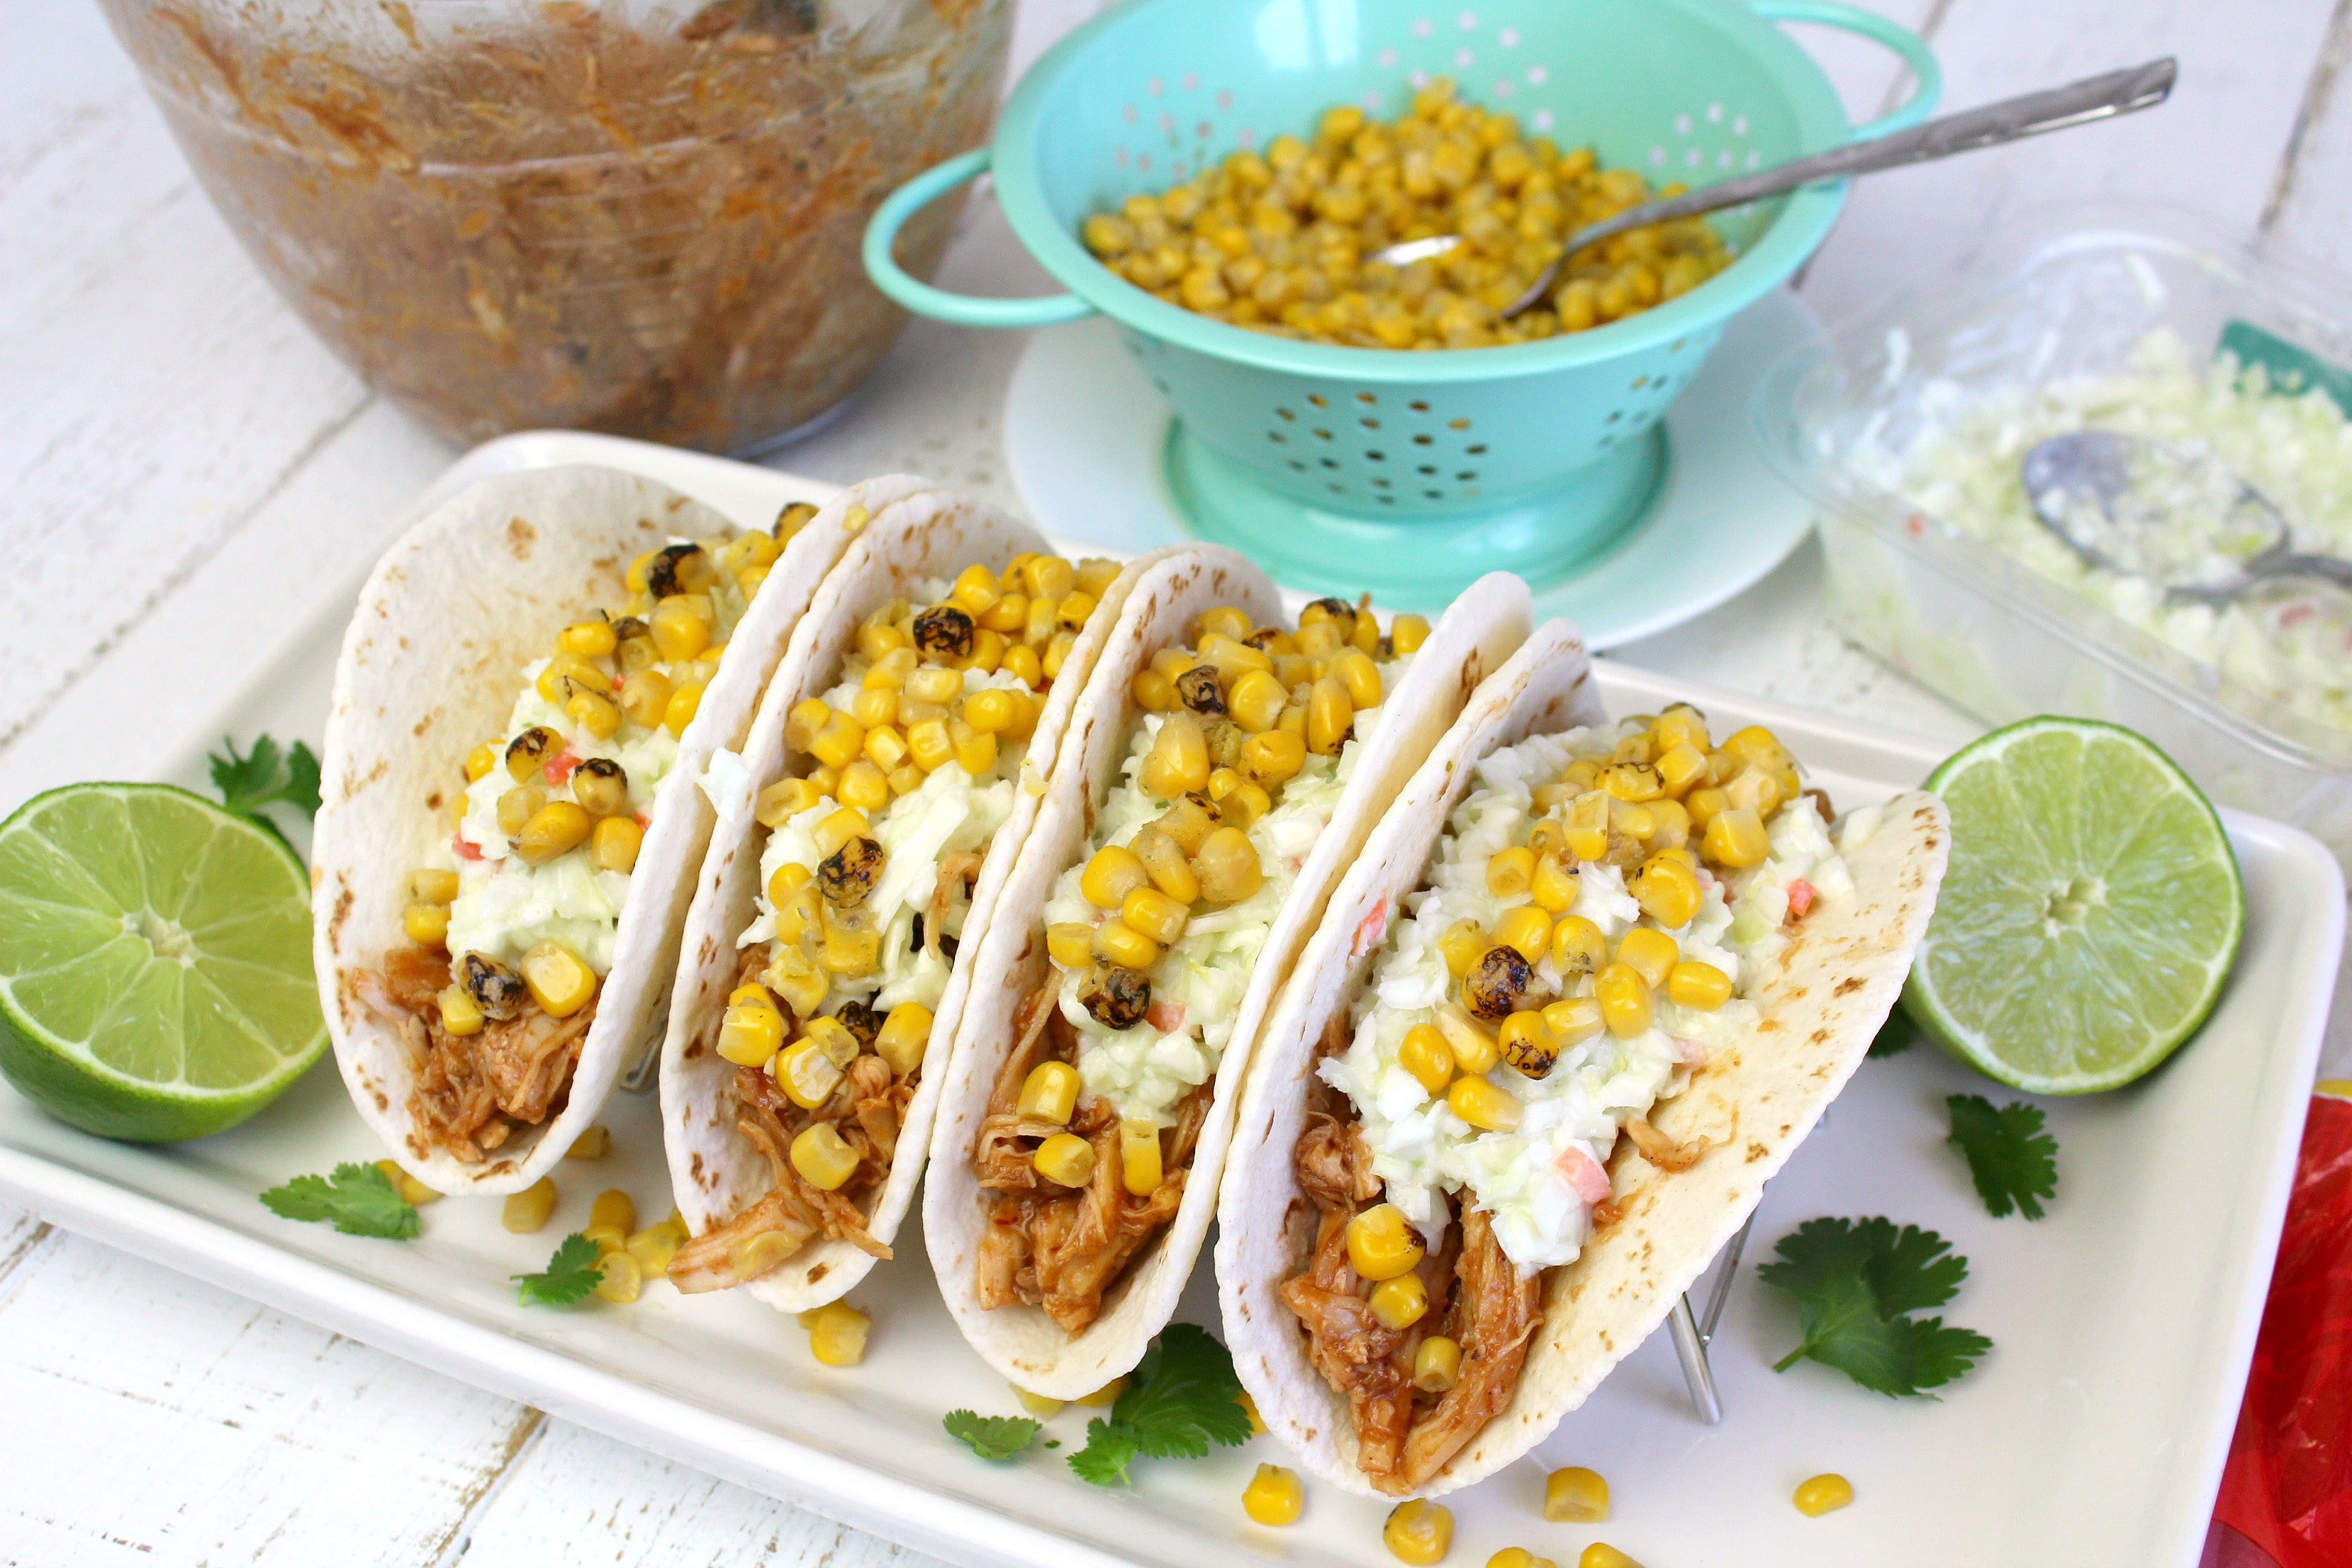 5 Ingredient Tacos ready in less than 5 minutes!